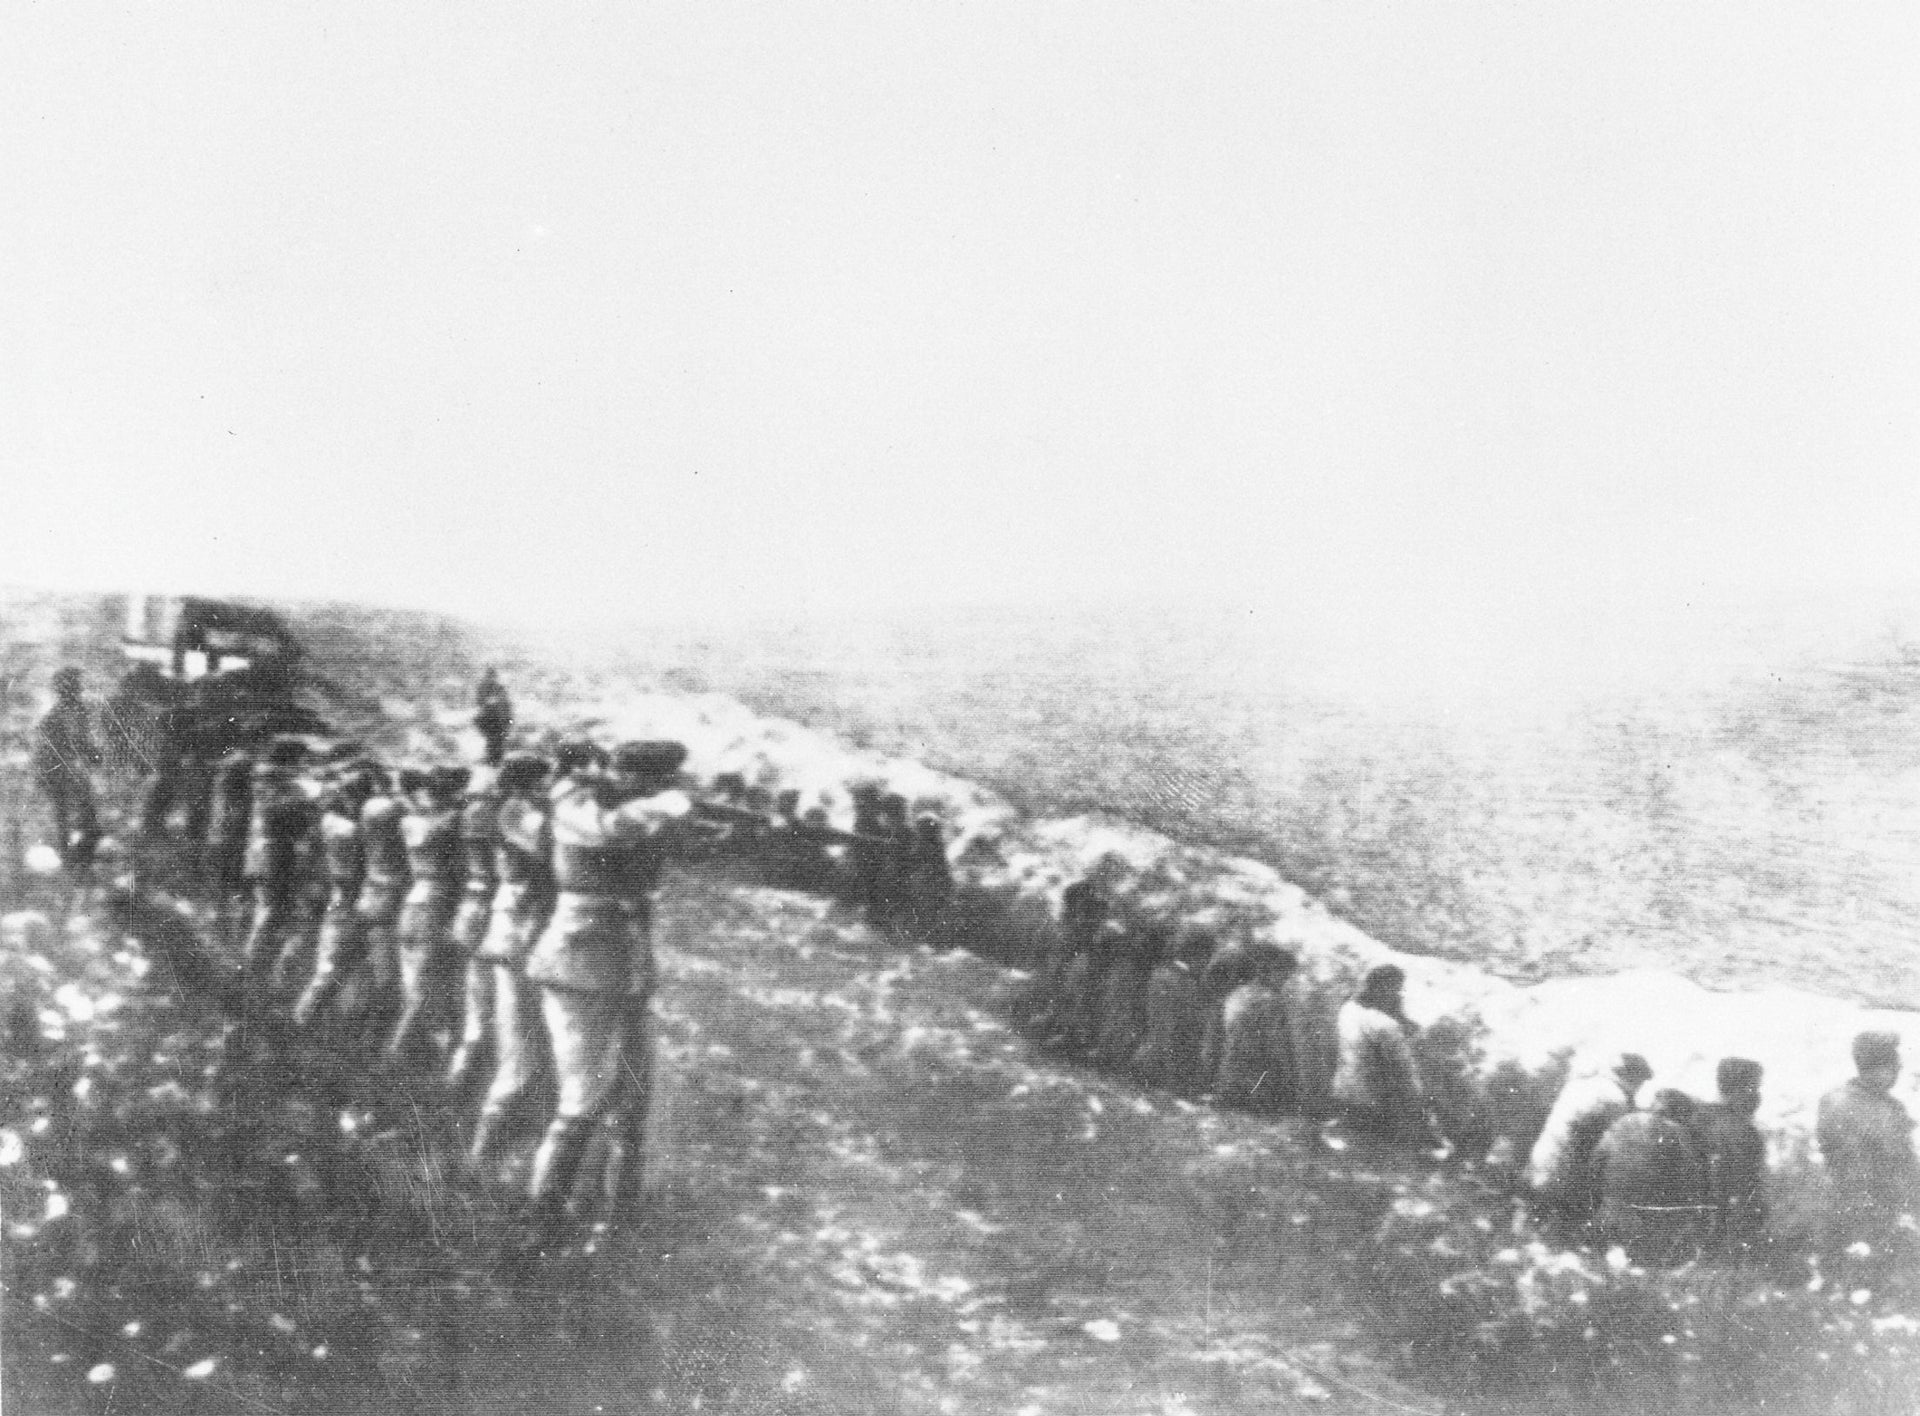 A photo found in 1942 along with the body of a Nazi officer killed in Russia, showing mass murder at Babi Yar.